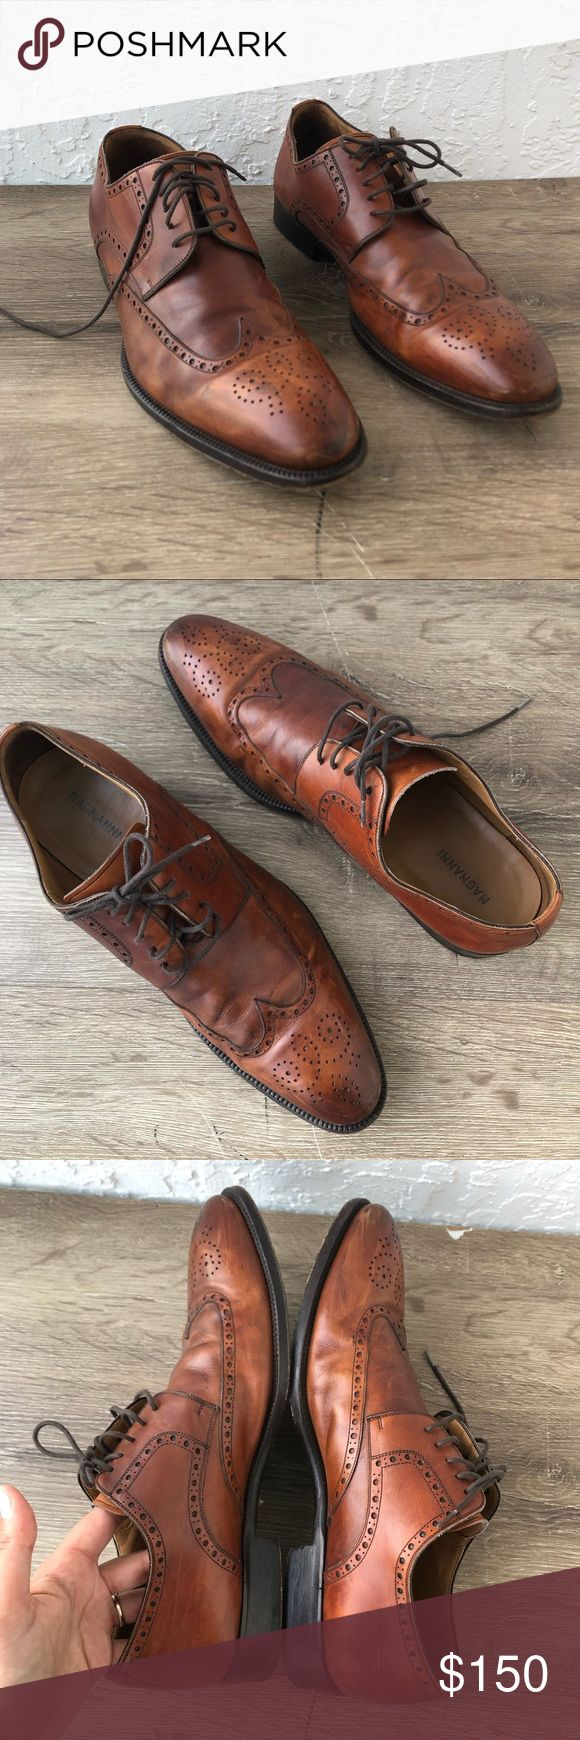 Magnanni brown leather wingtip oxford shoes 11M In excellent pre loved condition...